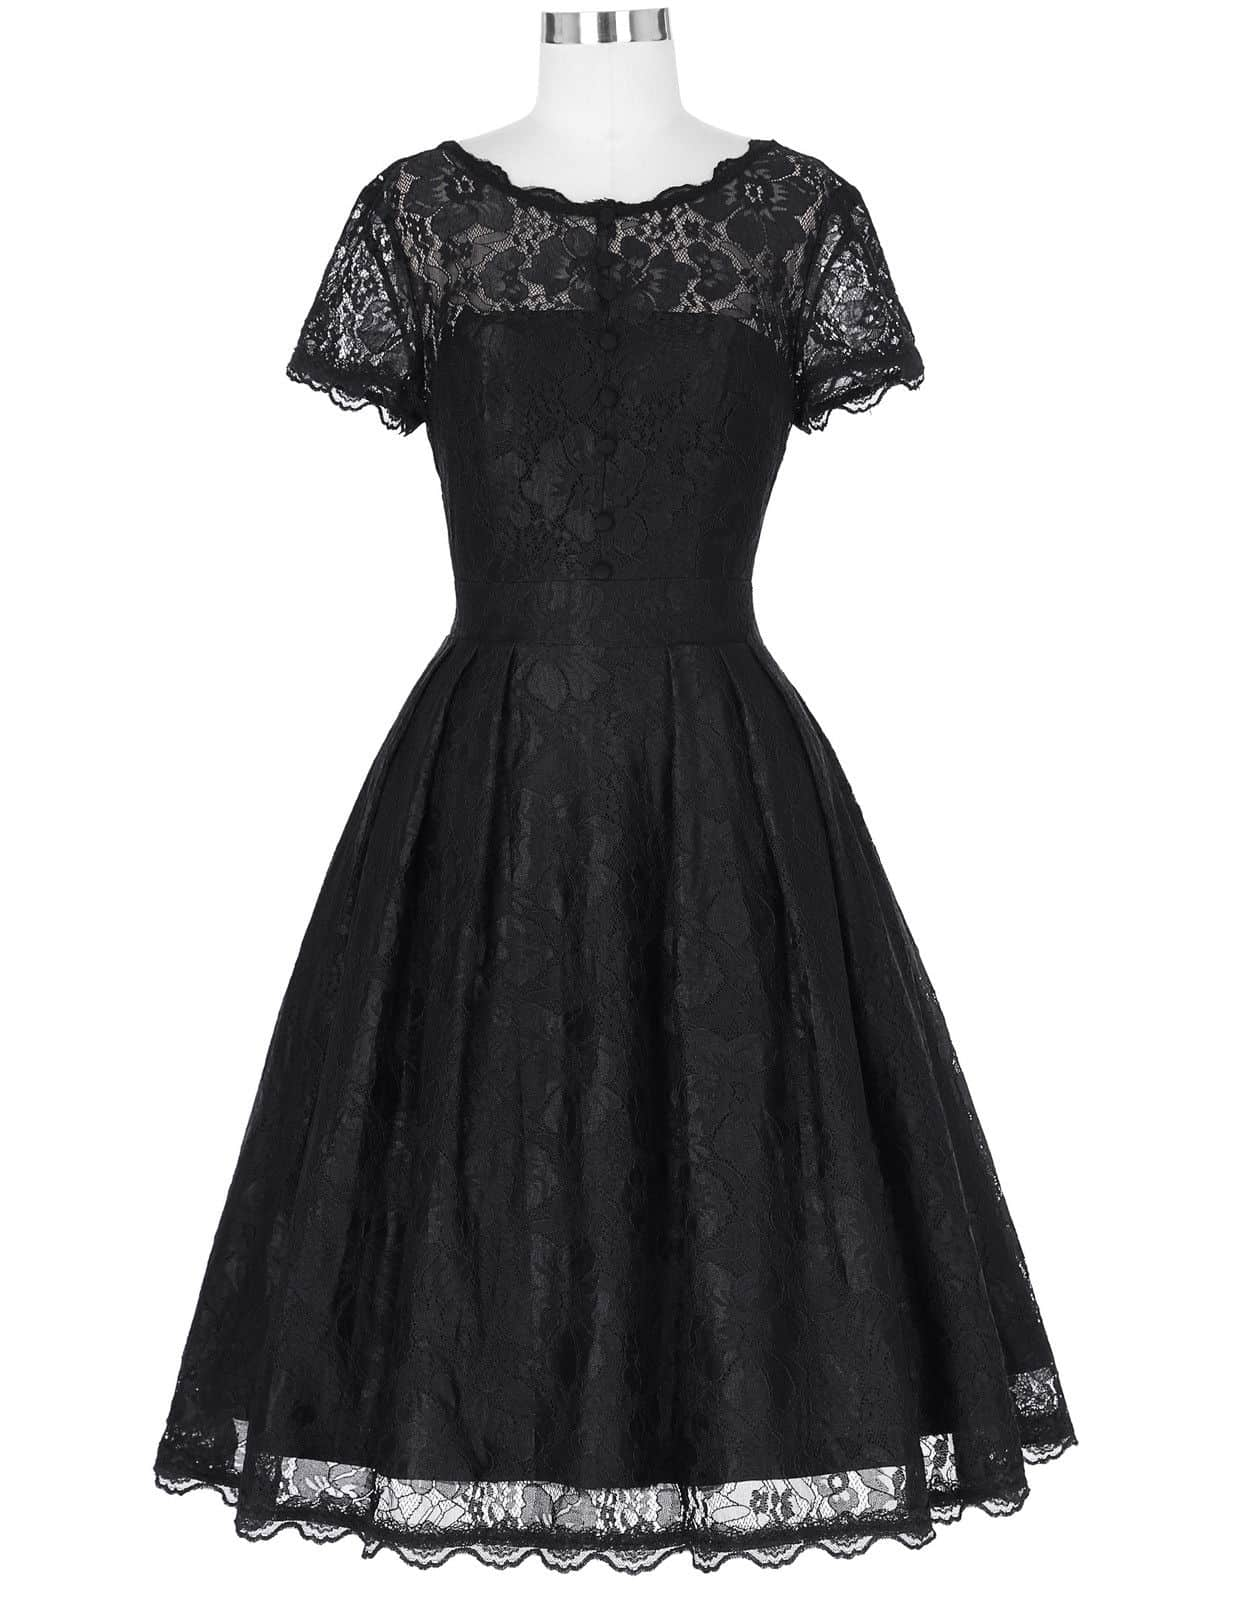 margot black lace vintage dress 1950sglam